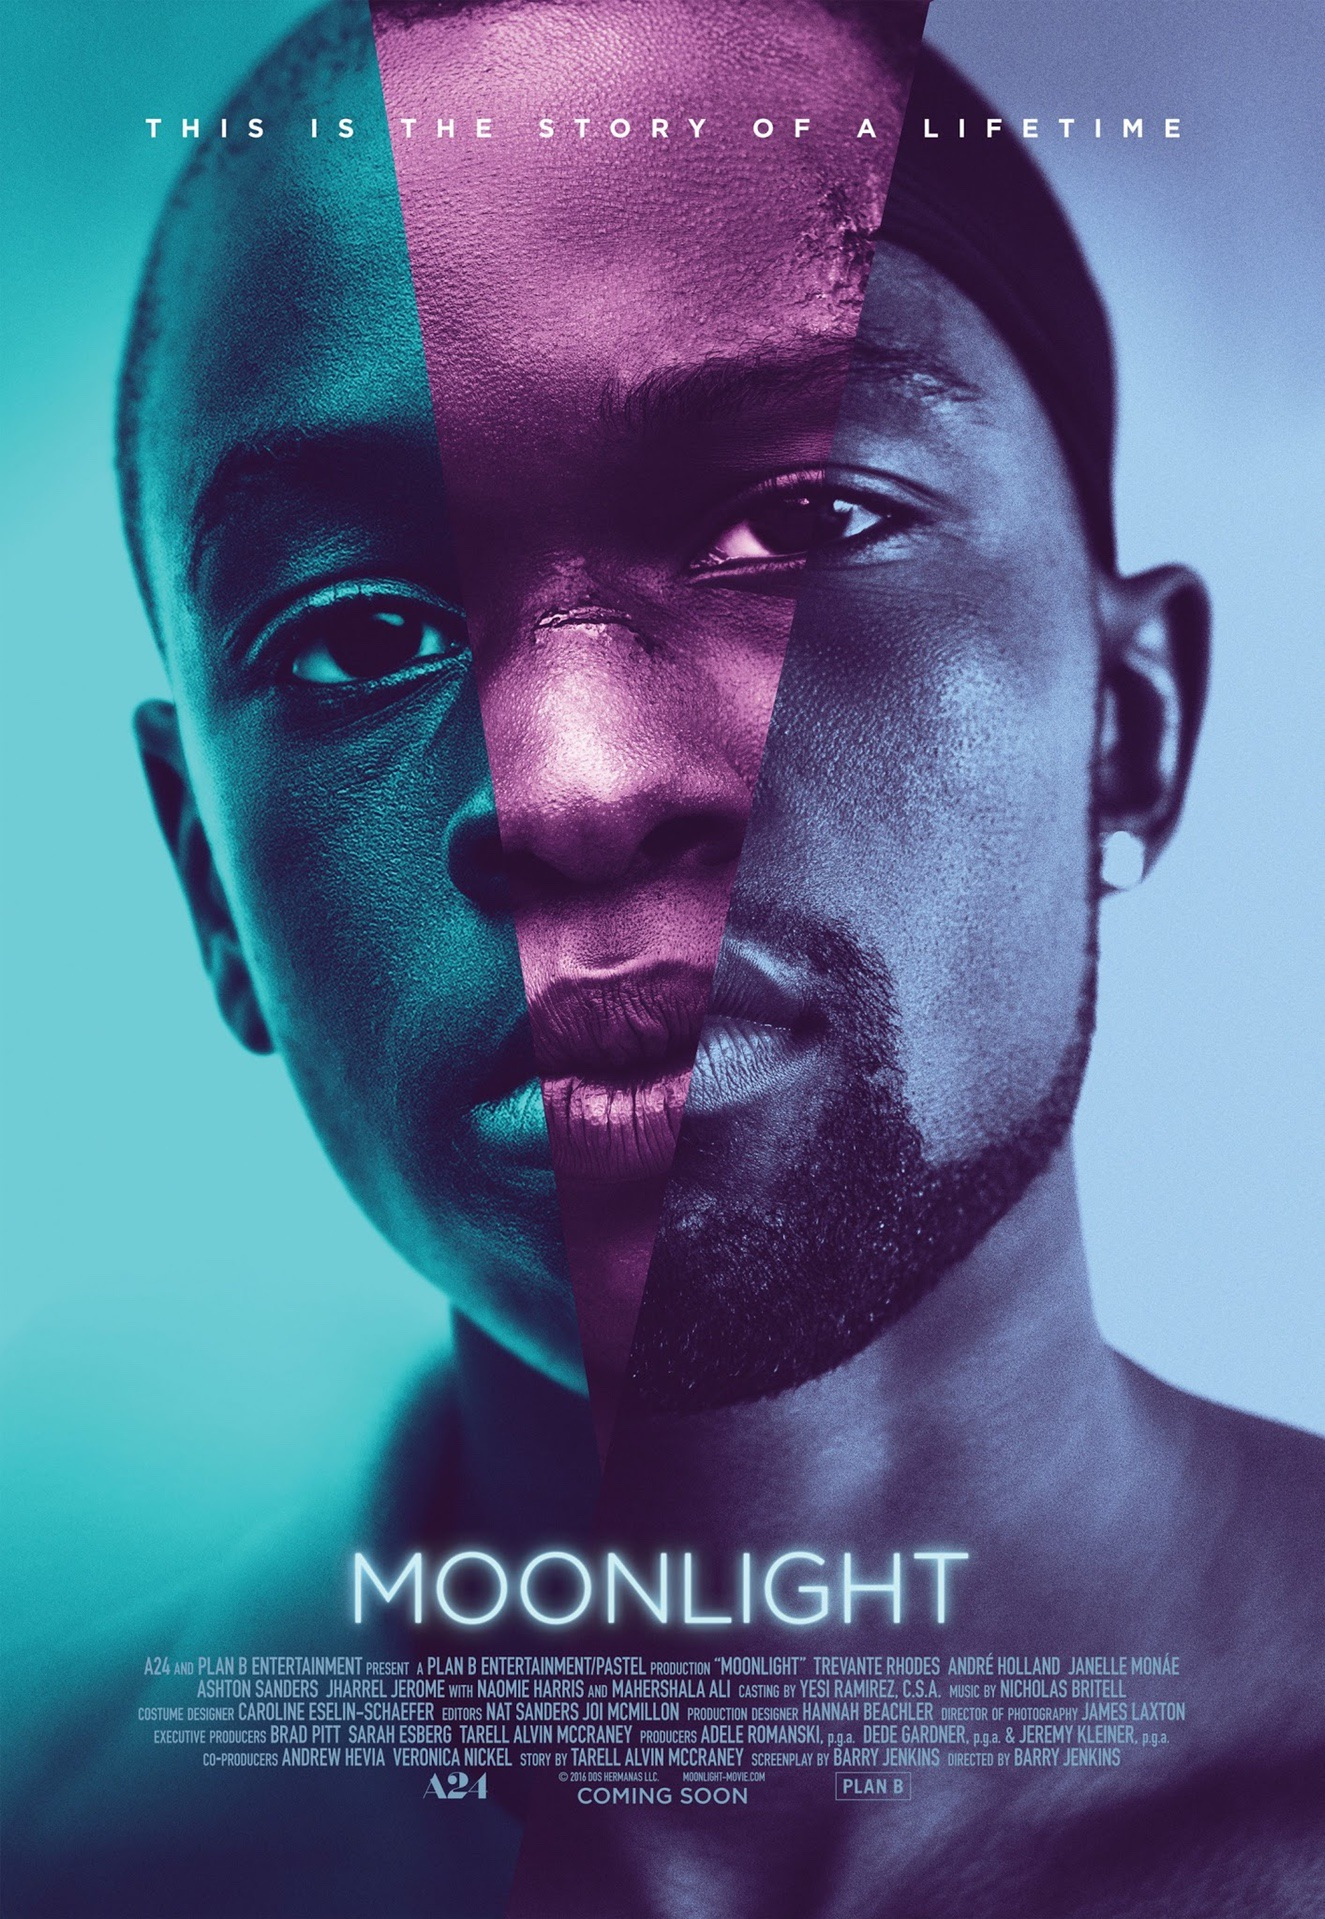 Moonlight poster design by InSync Plus - Pako Campo